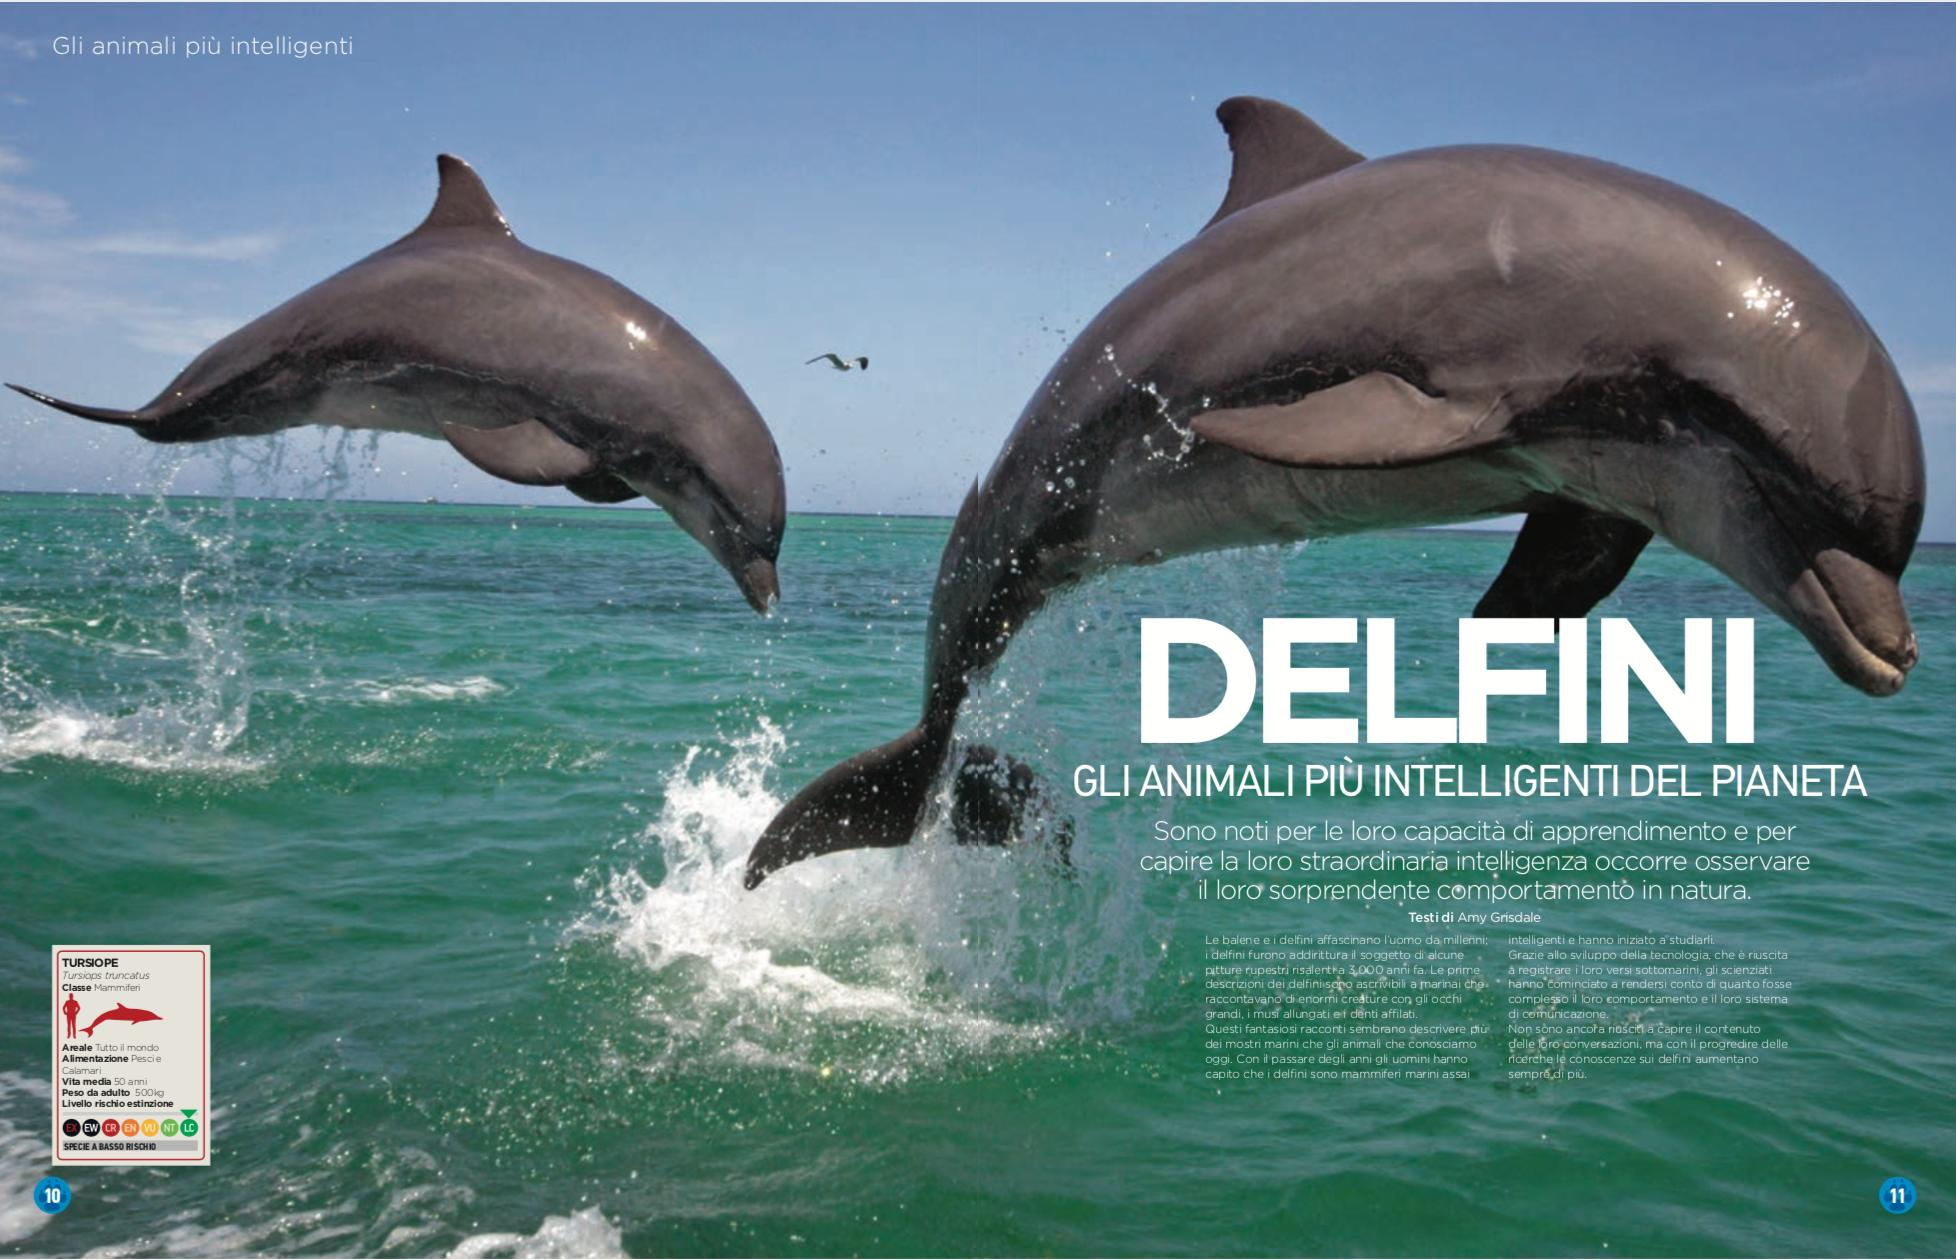 Nature_and_animals_delfini_dolphin.png